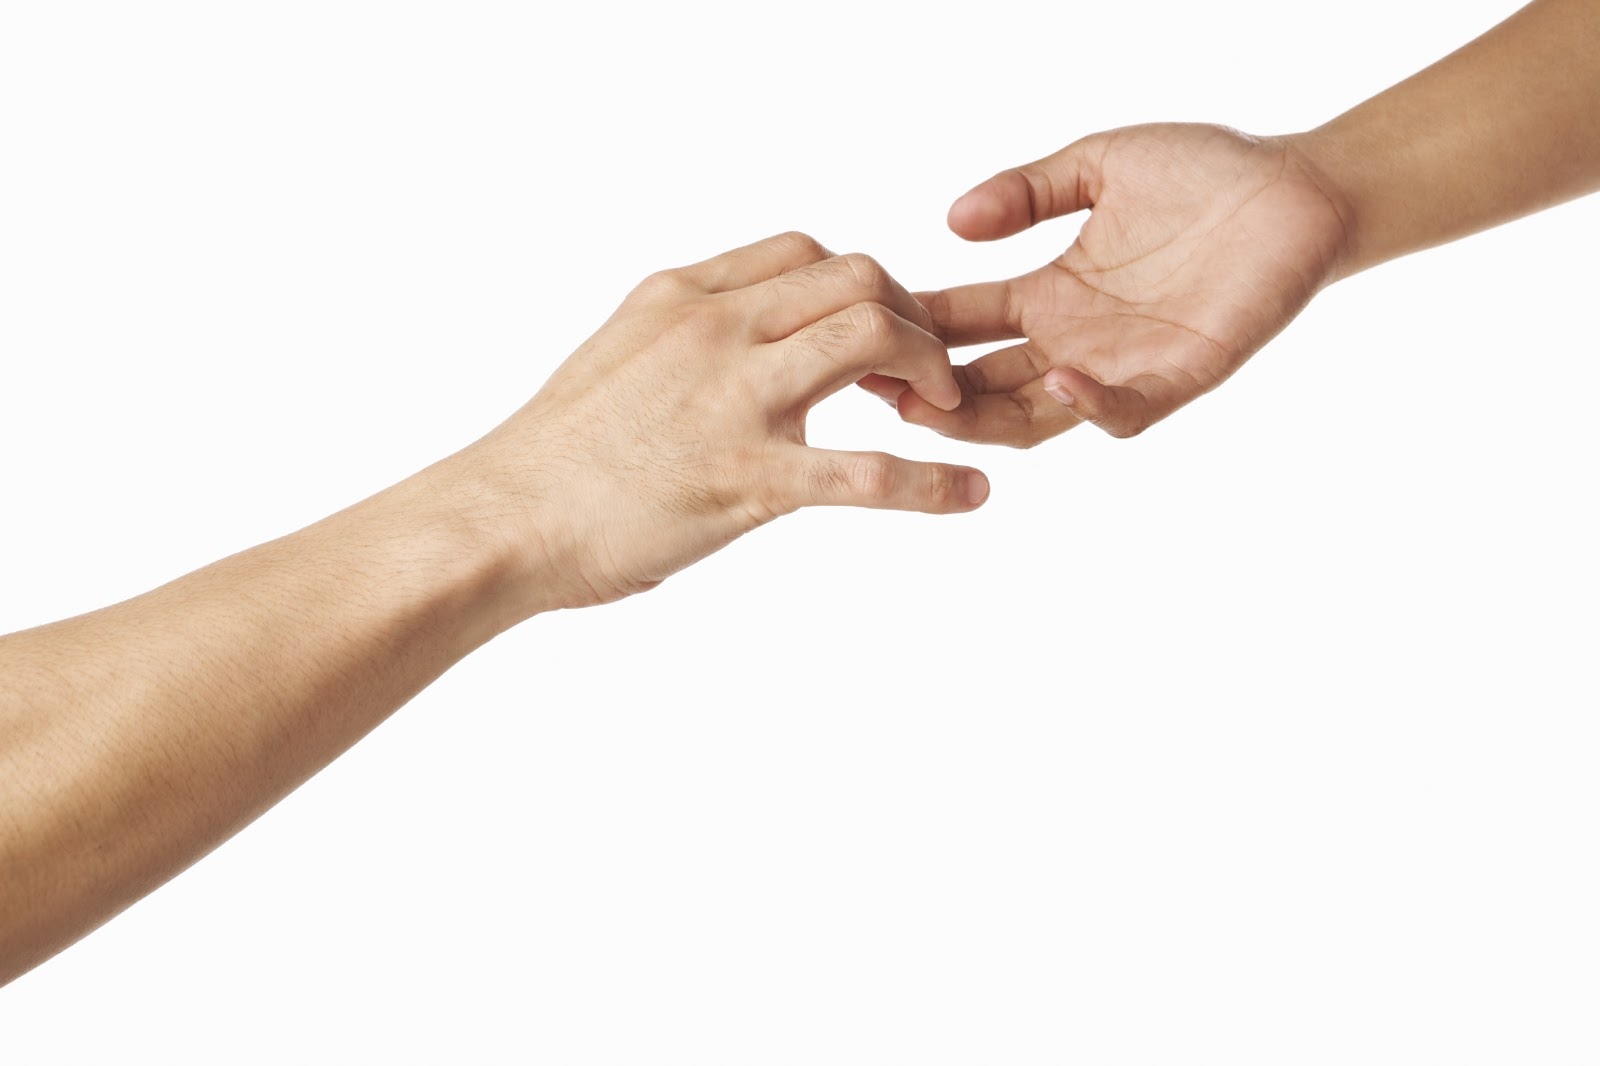 Holding hands with someone you're not dating